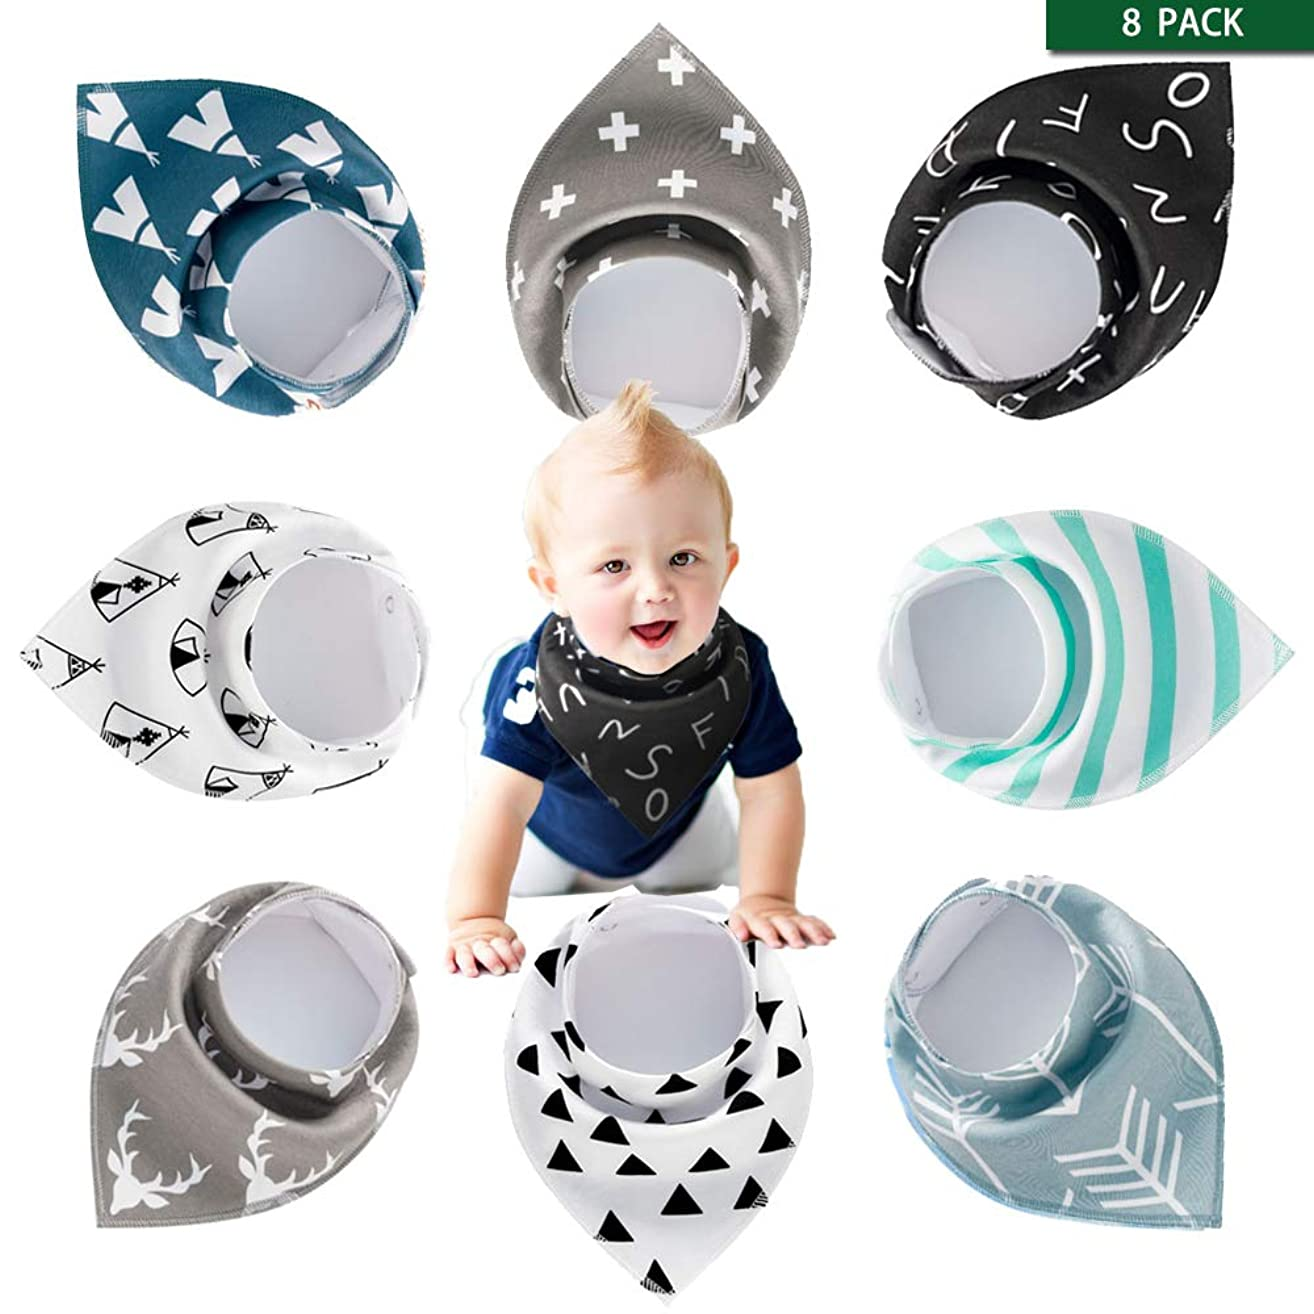 Baby Bibs Bandana 8 Pack Set for Toddler Boys and Girls Drooling and Teething, Organic Cotton and Super Absorbent Hypoallergenic Handkerchief Baby Shower Gift (Simple Style)